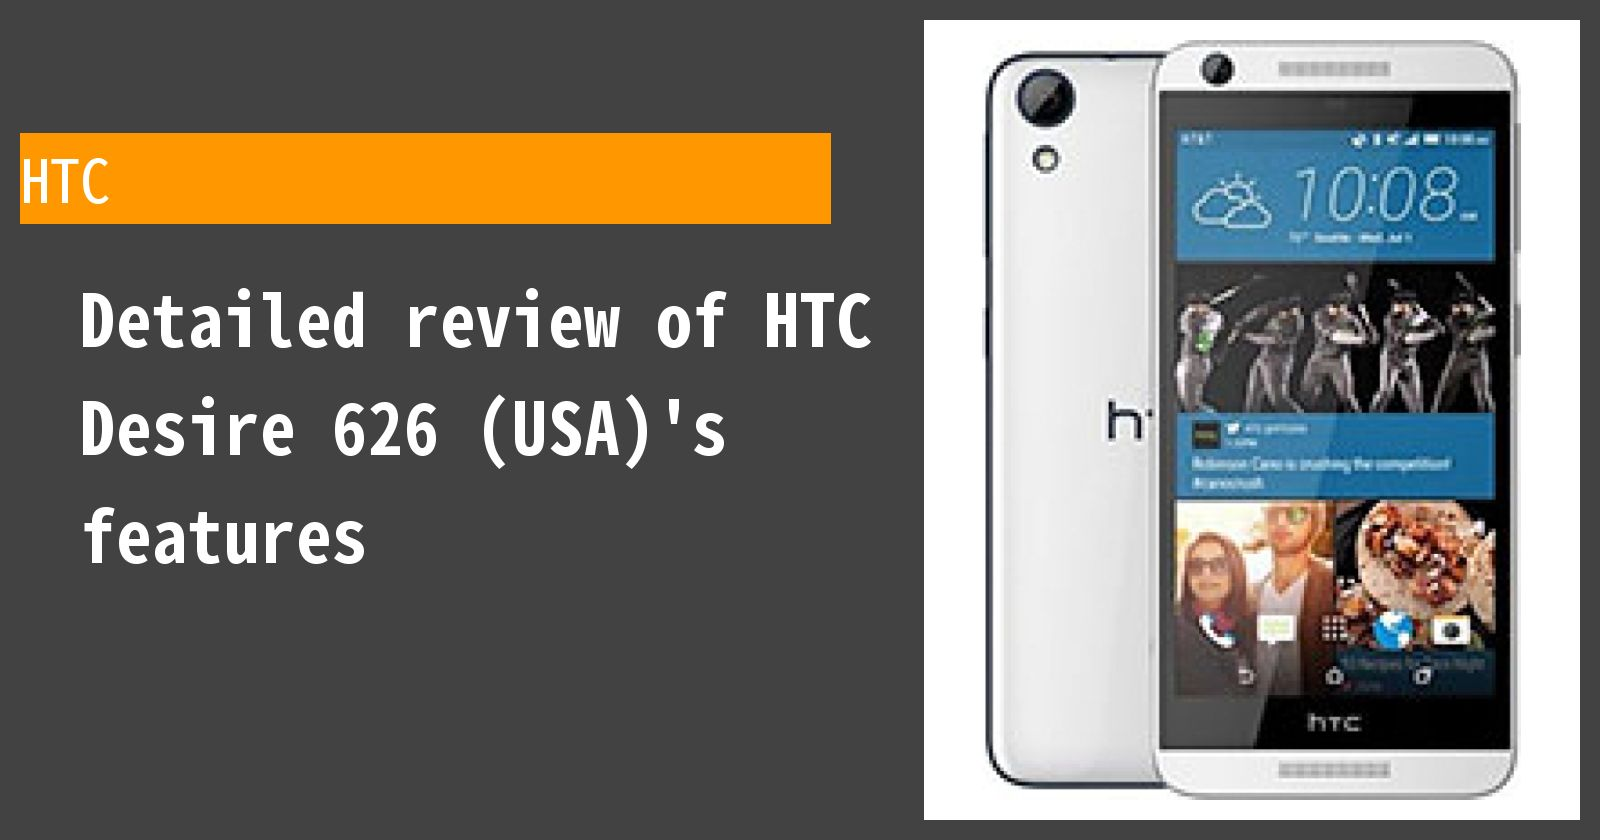 Detailed review of HTC Desire 626 (USA)'s features